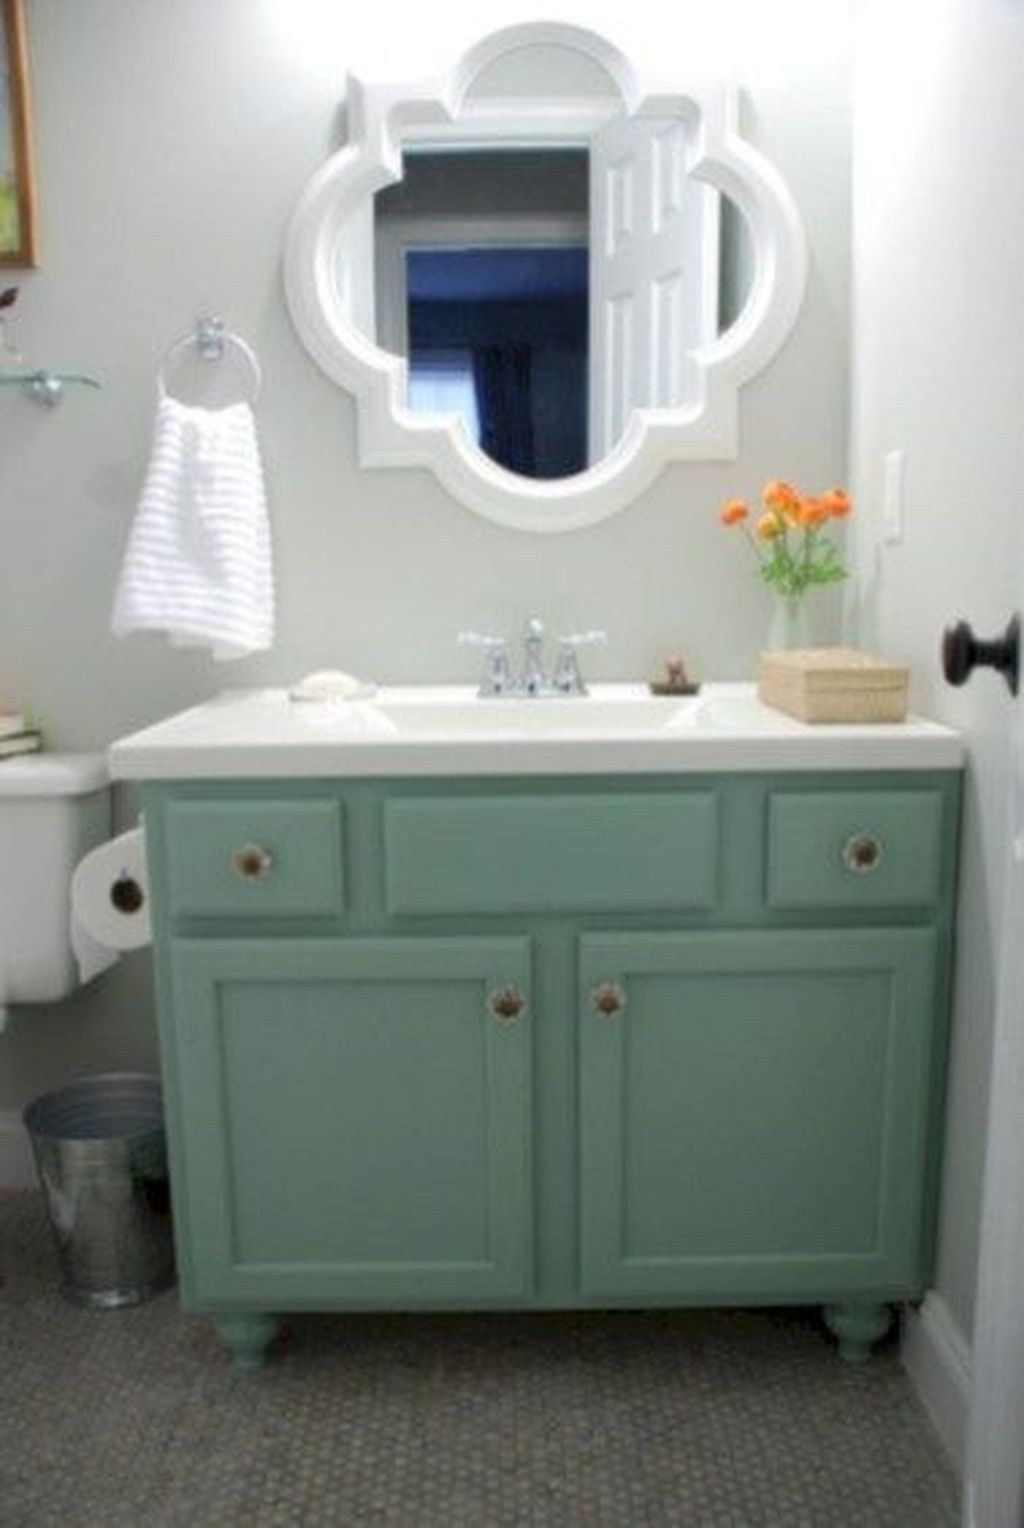 Pin by Melissa Howard Authement on indian bay powder room ...